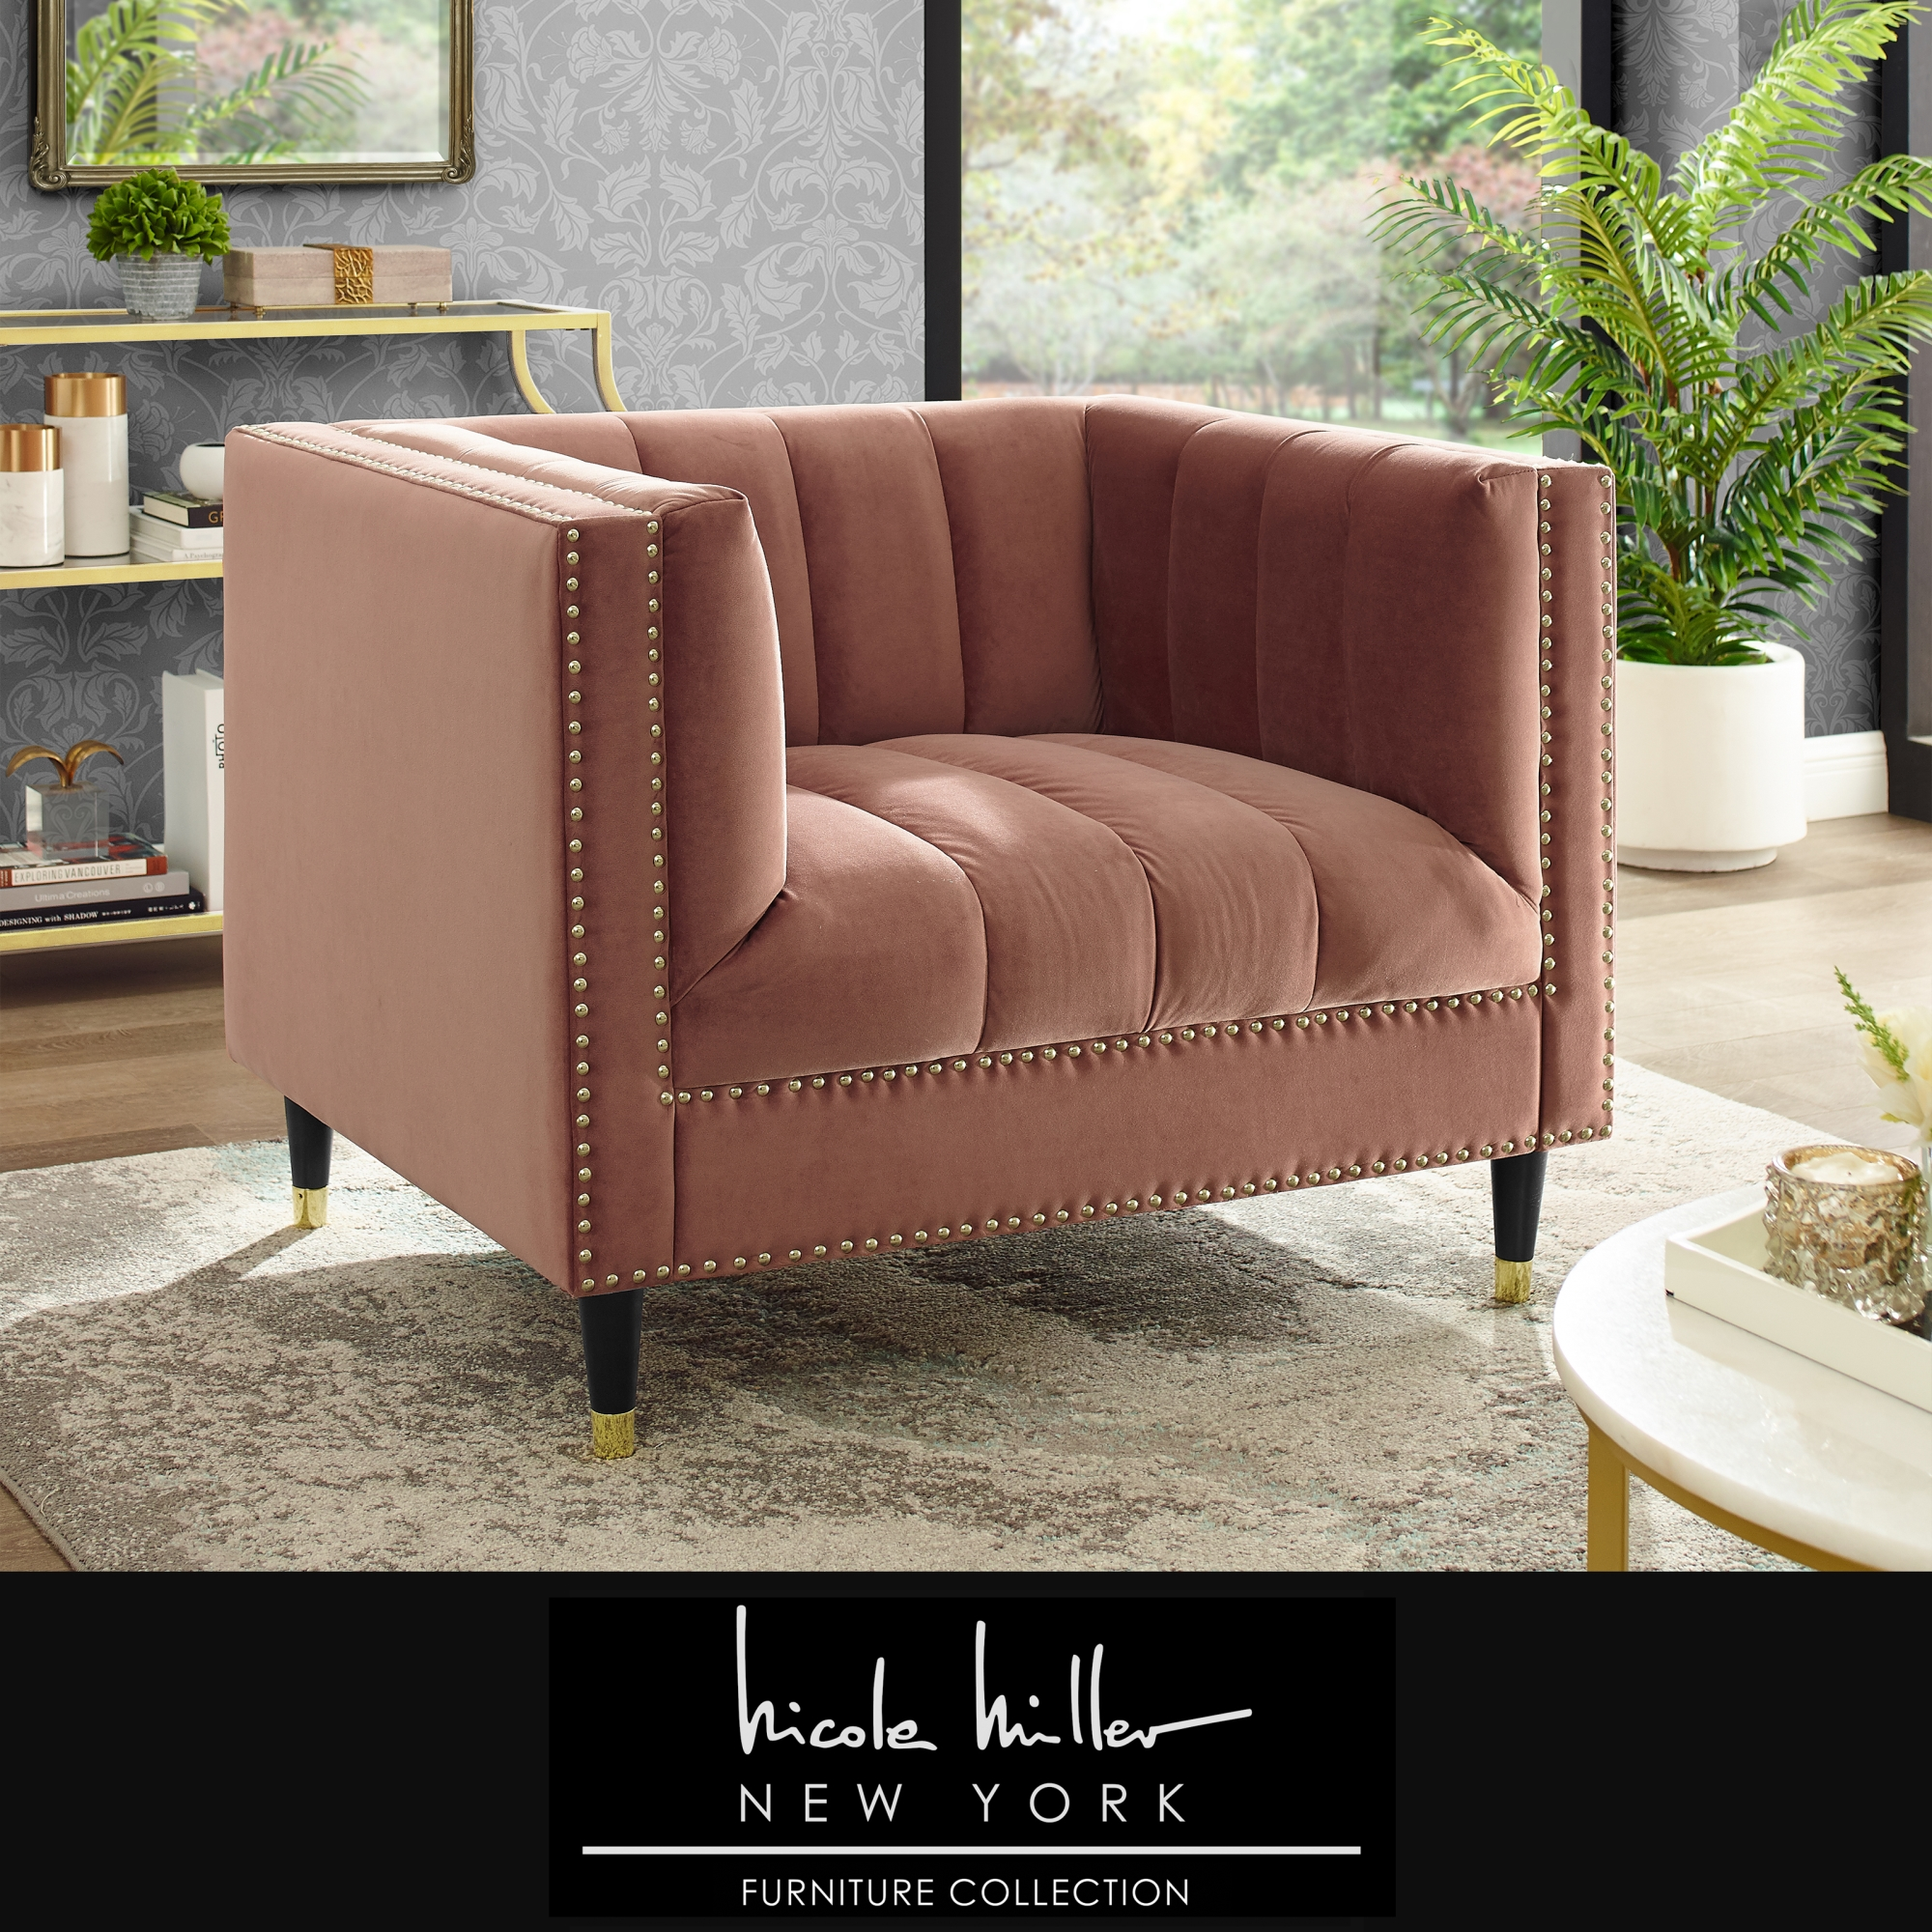 Nicole Miller Blush/Gold Velvet Club Chair Line Stitch Tufted Gold Nailhead Trim and Tapered Gold Leg Tip